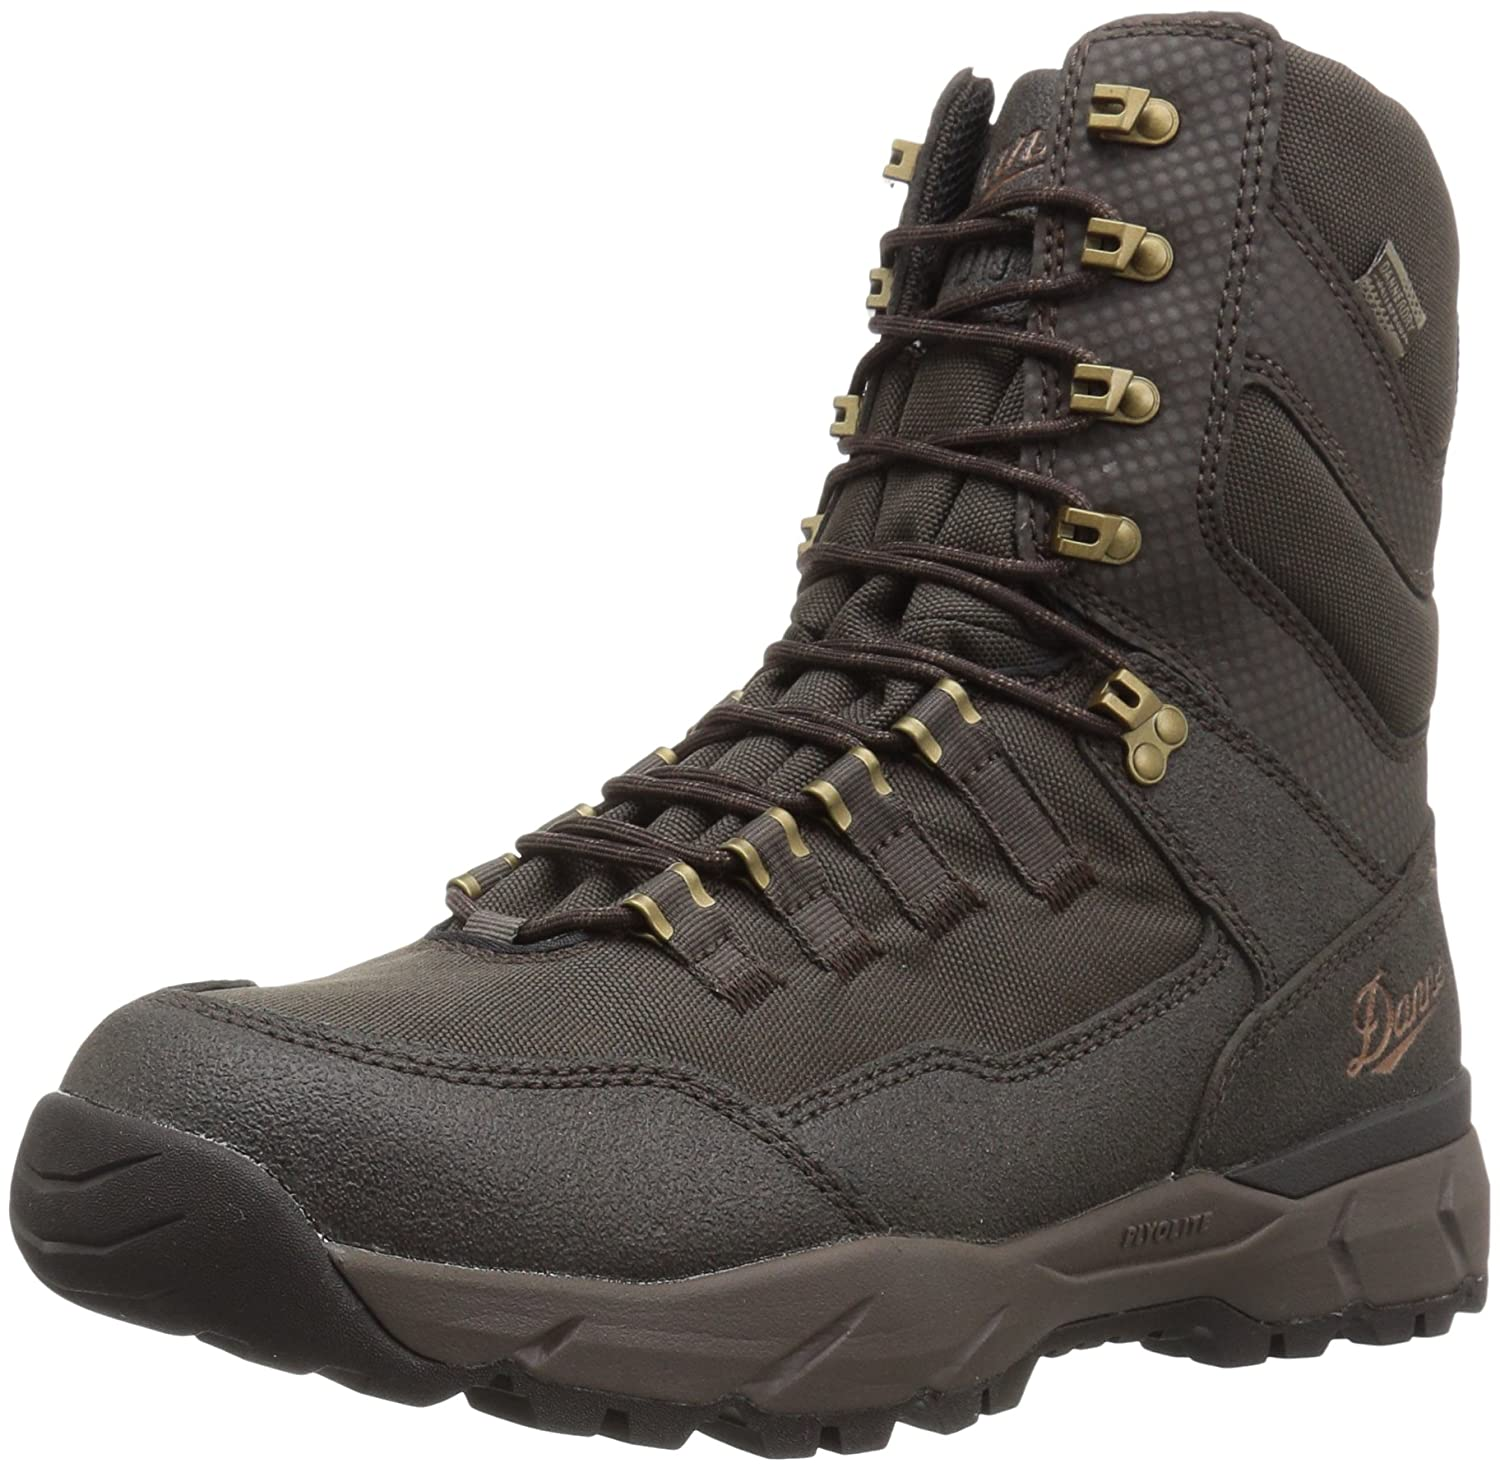 Danner Men's Vital Insulated 400G Hunting Shoes Vital Insulated 400G-M